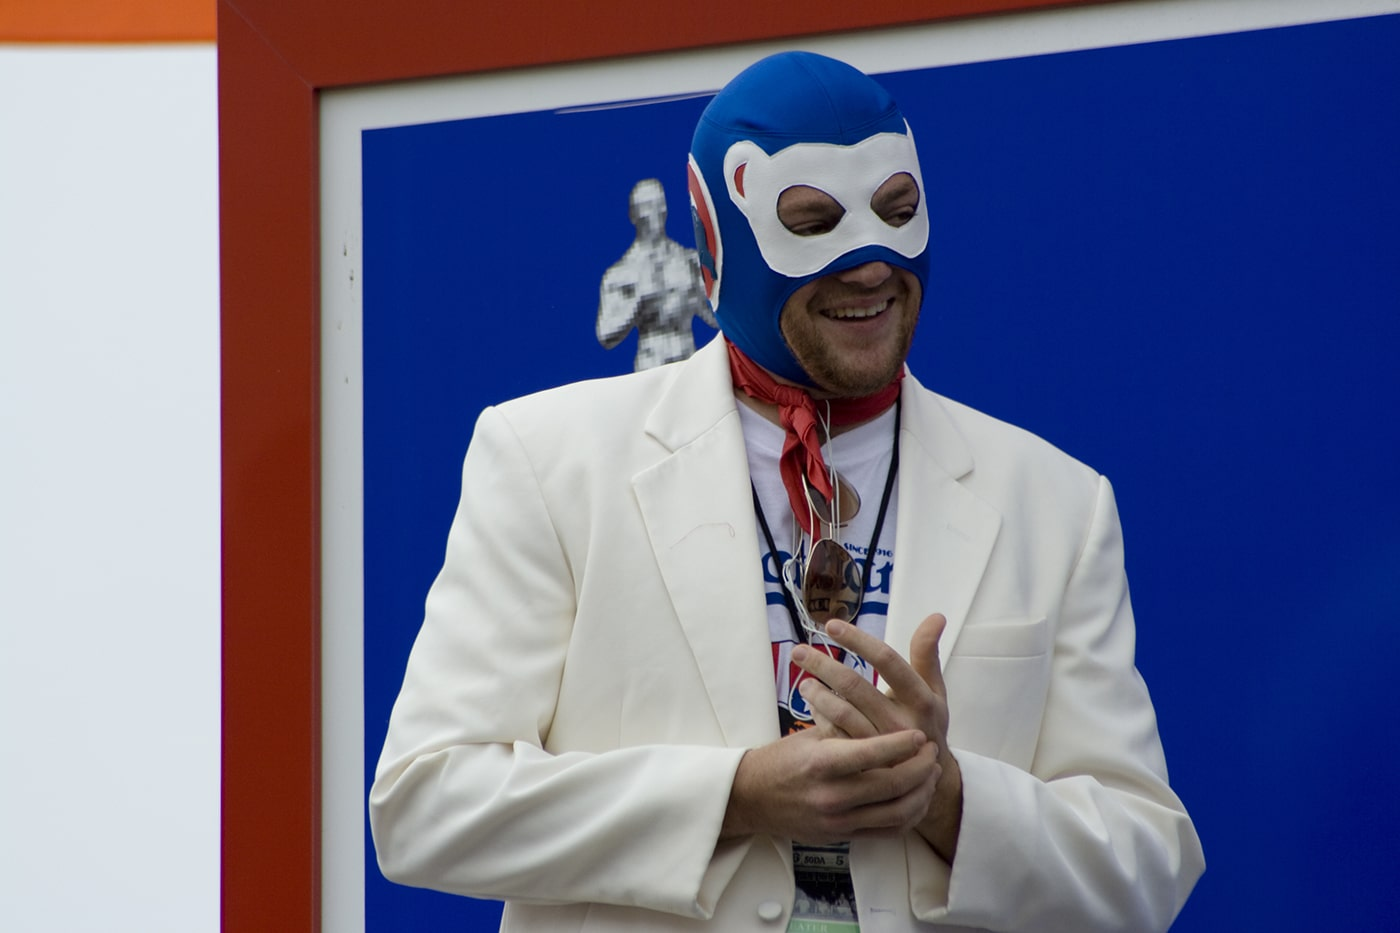 Competitive eater Tim Gravy Brown wears a Cubs competitive eating mask at the 2008 Nathan's Famous Fourth of July hot dog eating contest at Coney Island in New York.